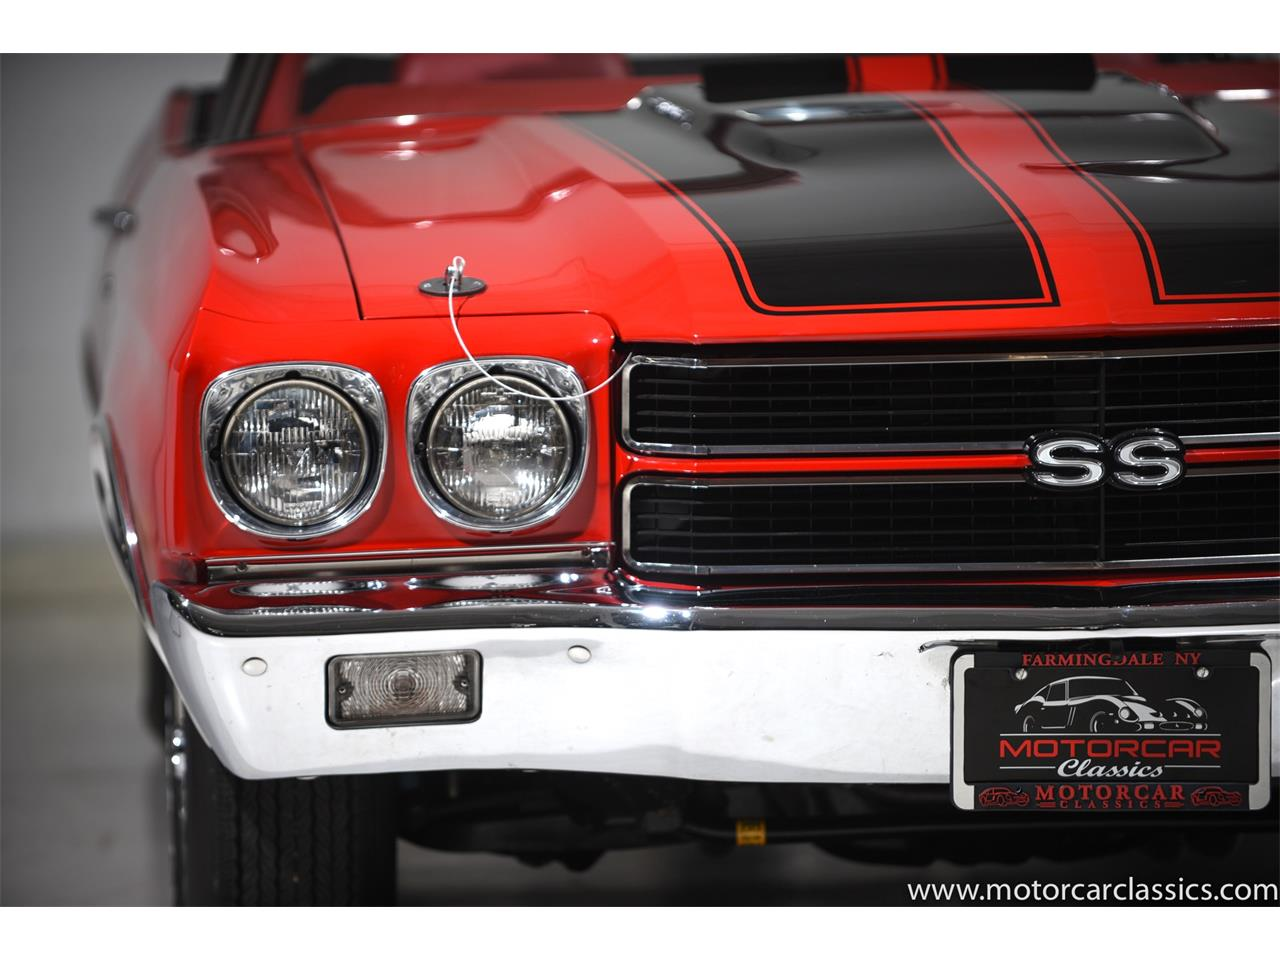 1970 Chevrolet Chevelle for sale in Farmingdale, NY – photo 19